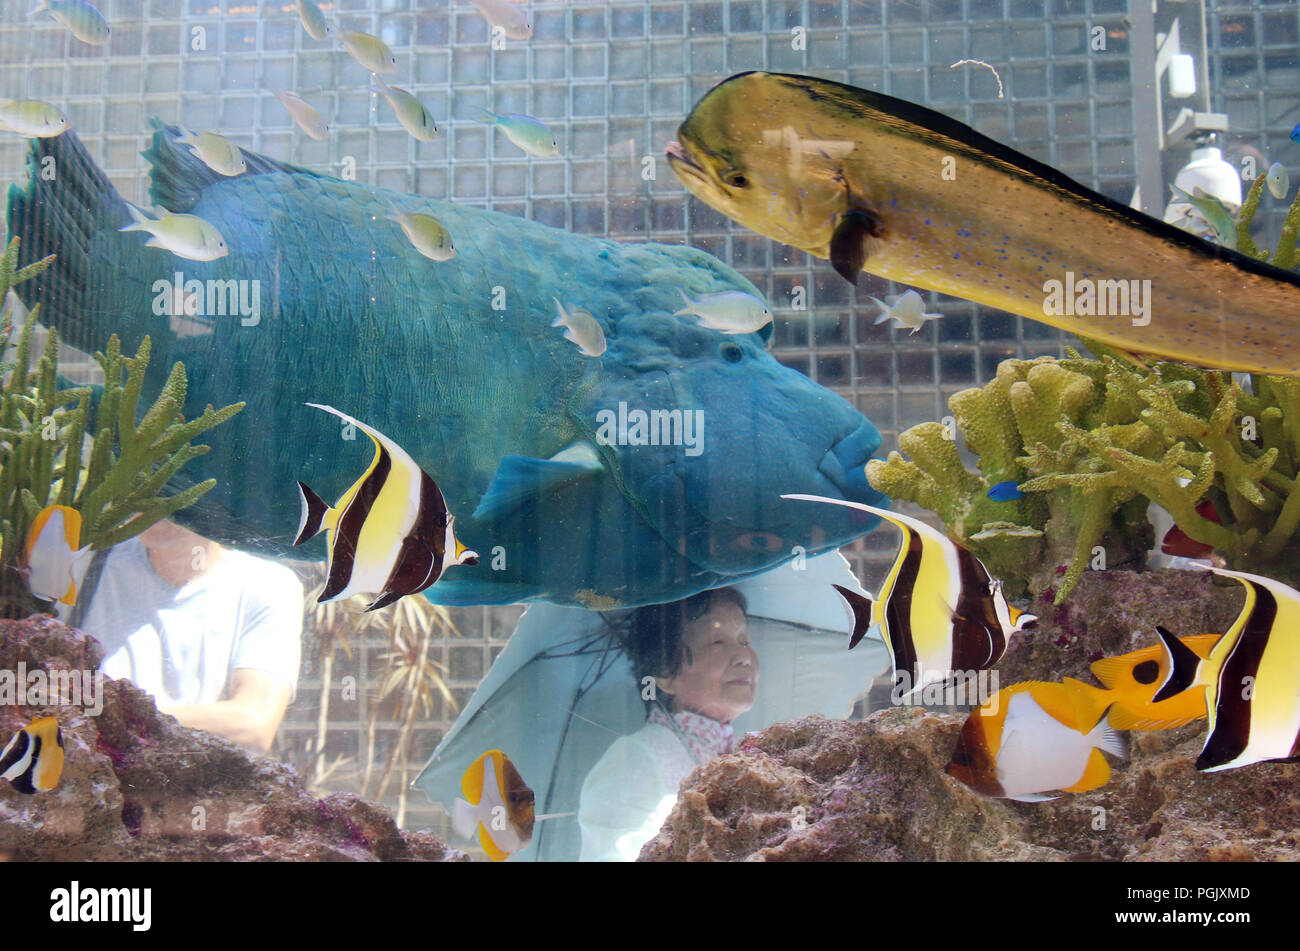 Shoppers In Ginza Look At Tropical Fish Displayed A Large Tank Sony Aquarium 2018 The Park Tokyo On Saturday August 25